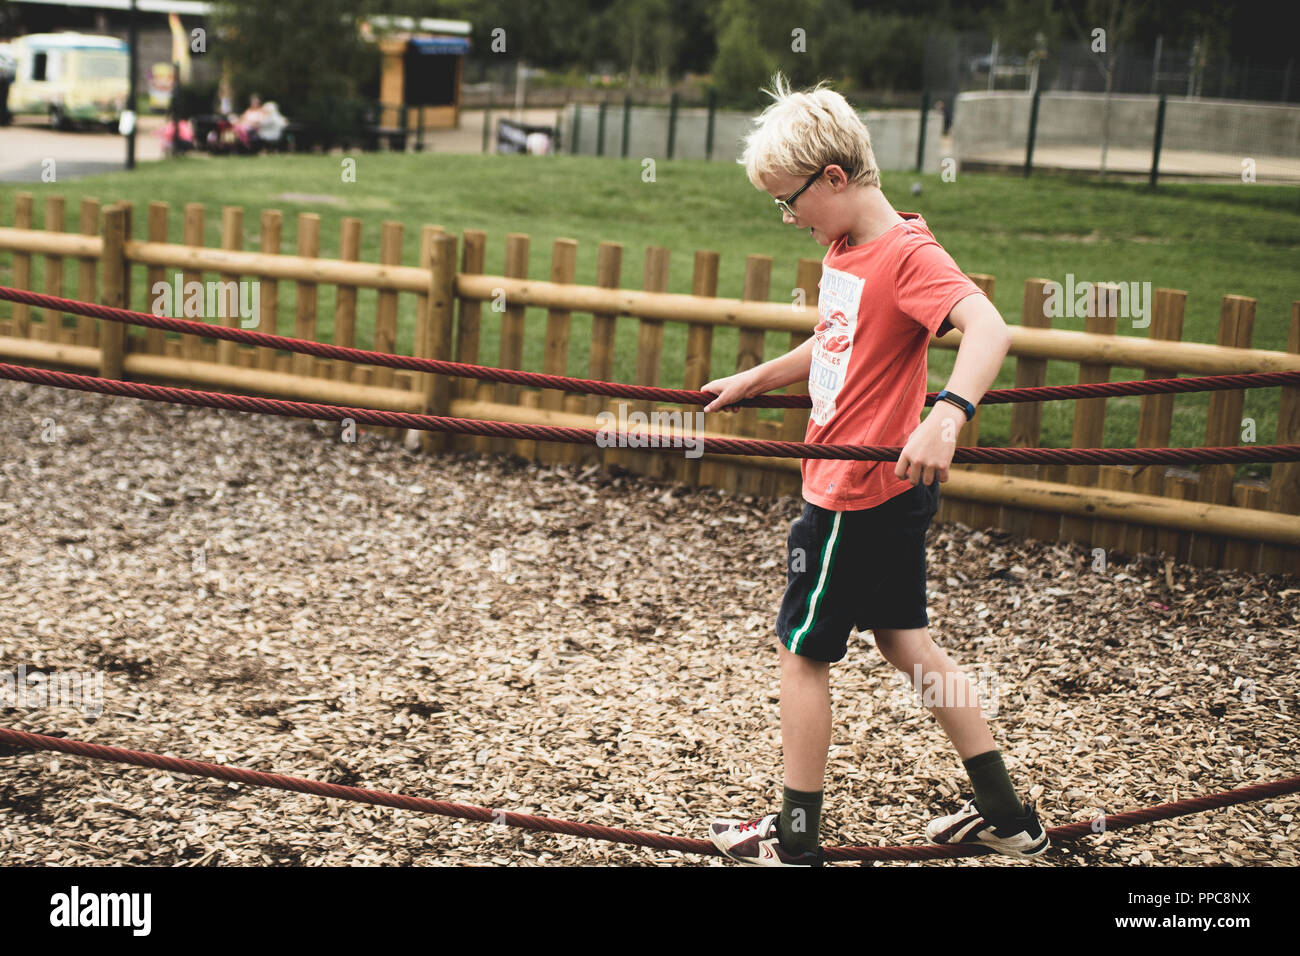 blond boy playing on a play park - Stock Image